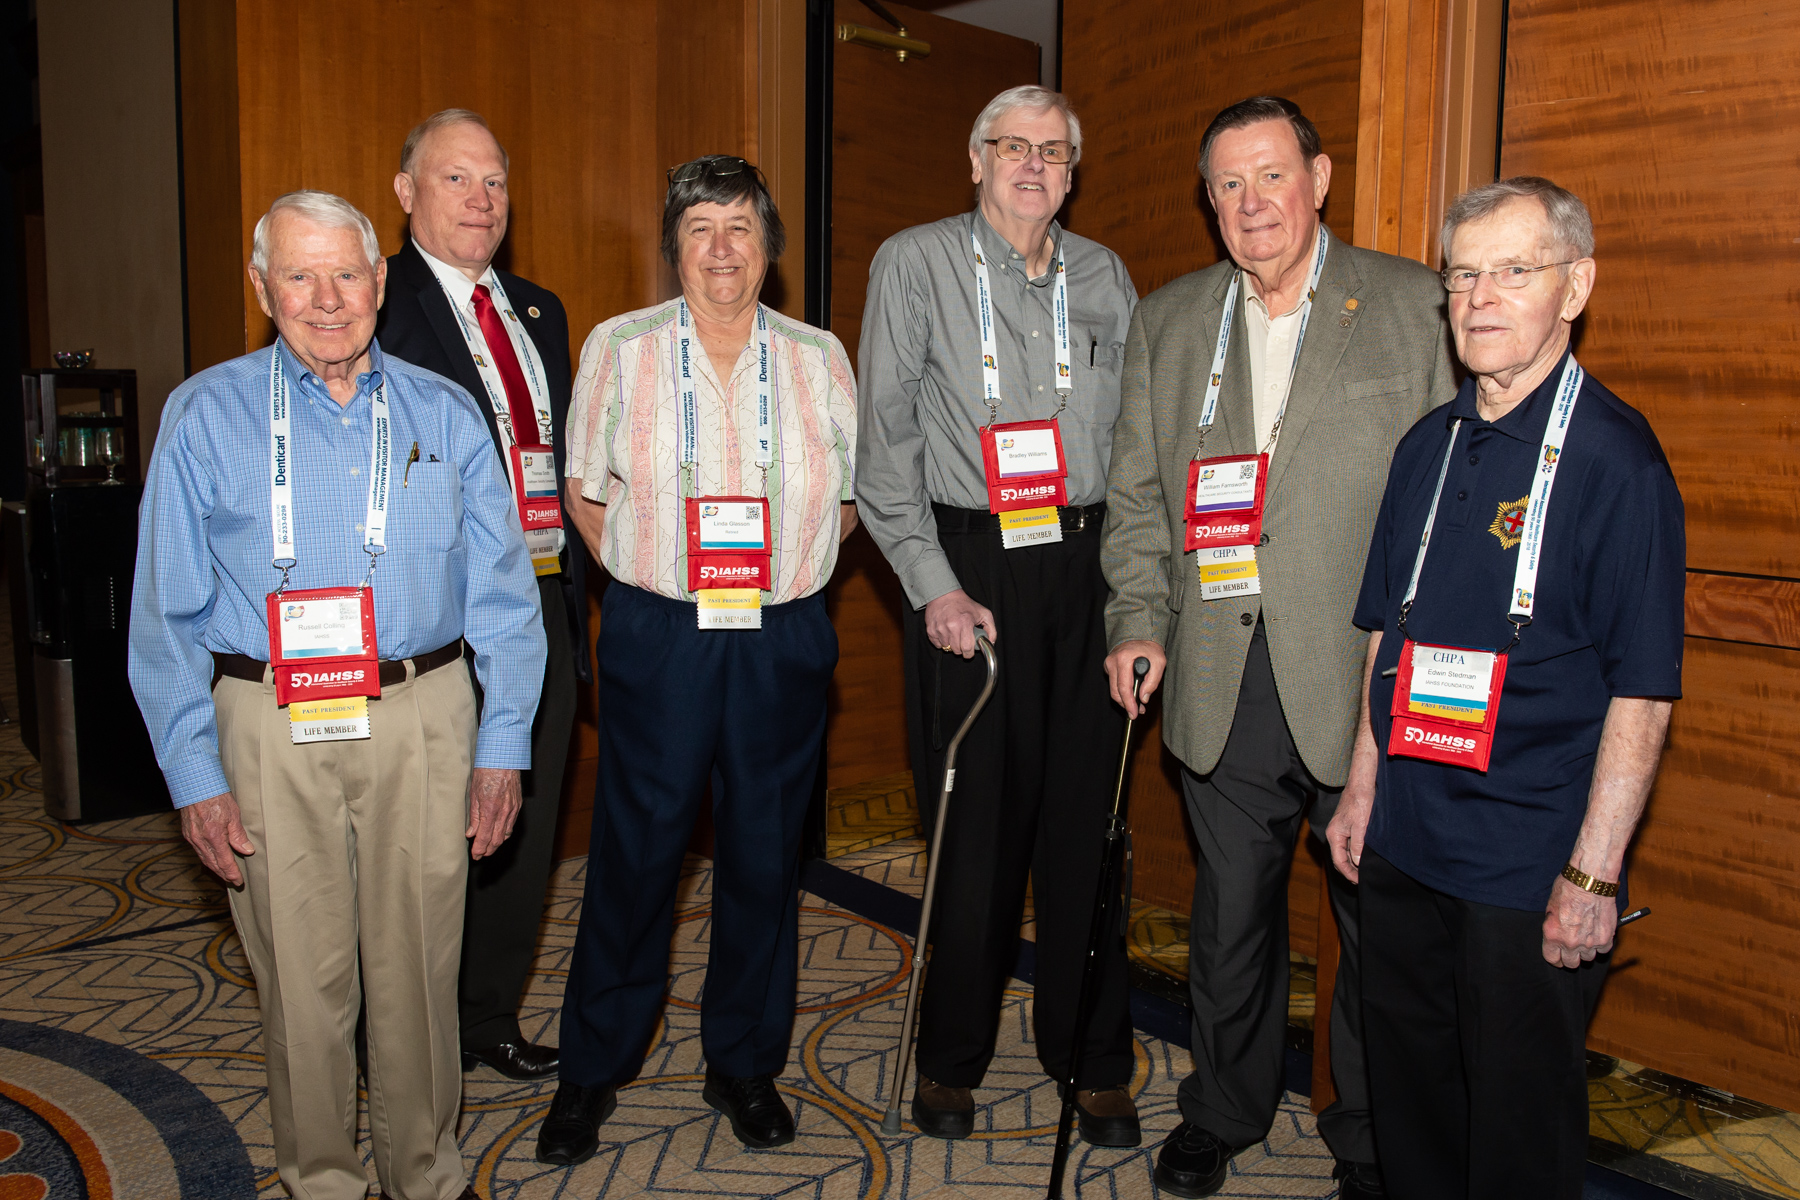 An impressive group of past IAHSS presidents